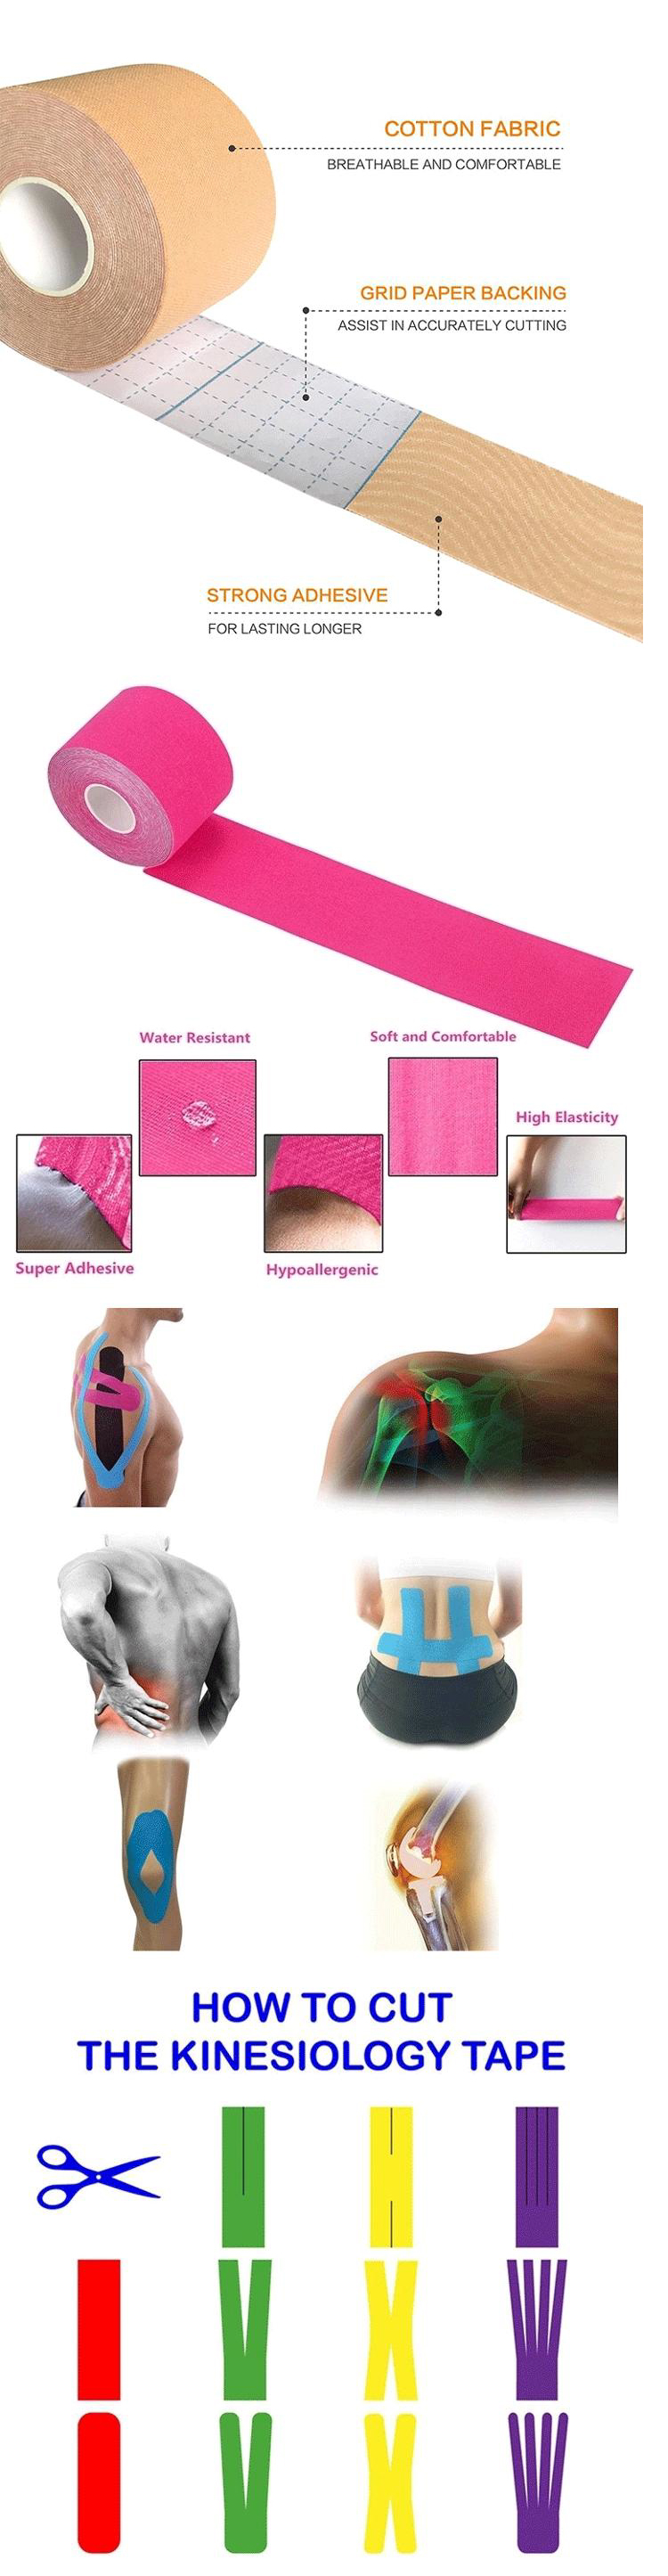 Atletische Tapes Kinesio Tape Body Tape Sport Tapes